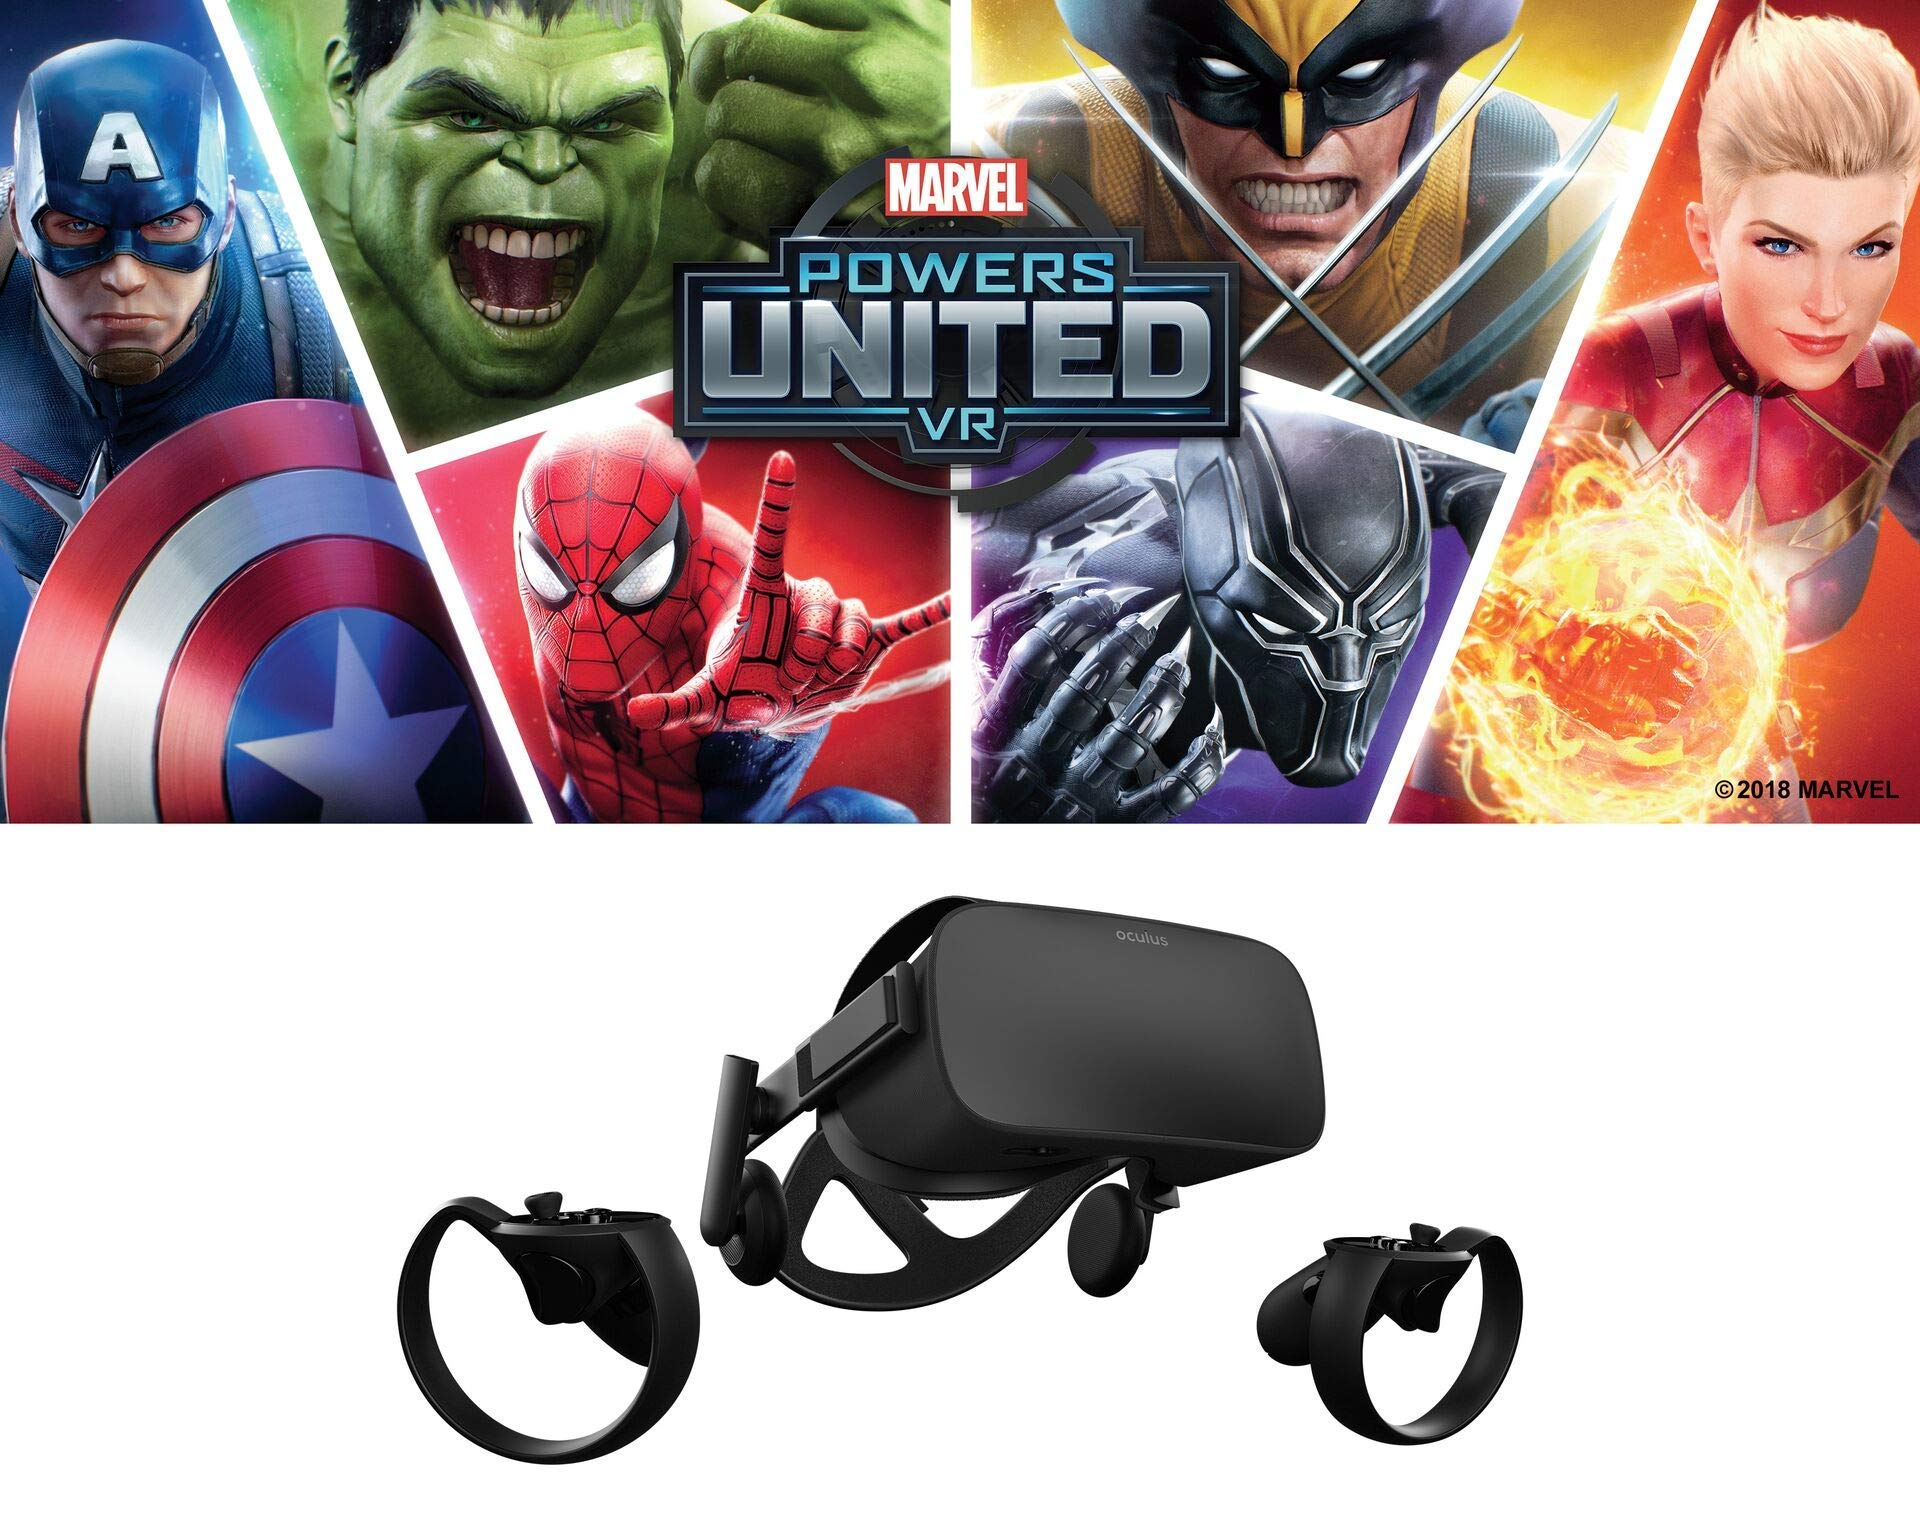 Oculus Marvel Powers United VR Special Edition Rift + Touch - PC (Limited Edition) (Renewed) by Oculus